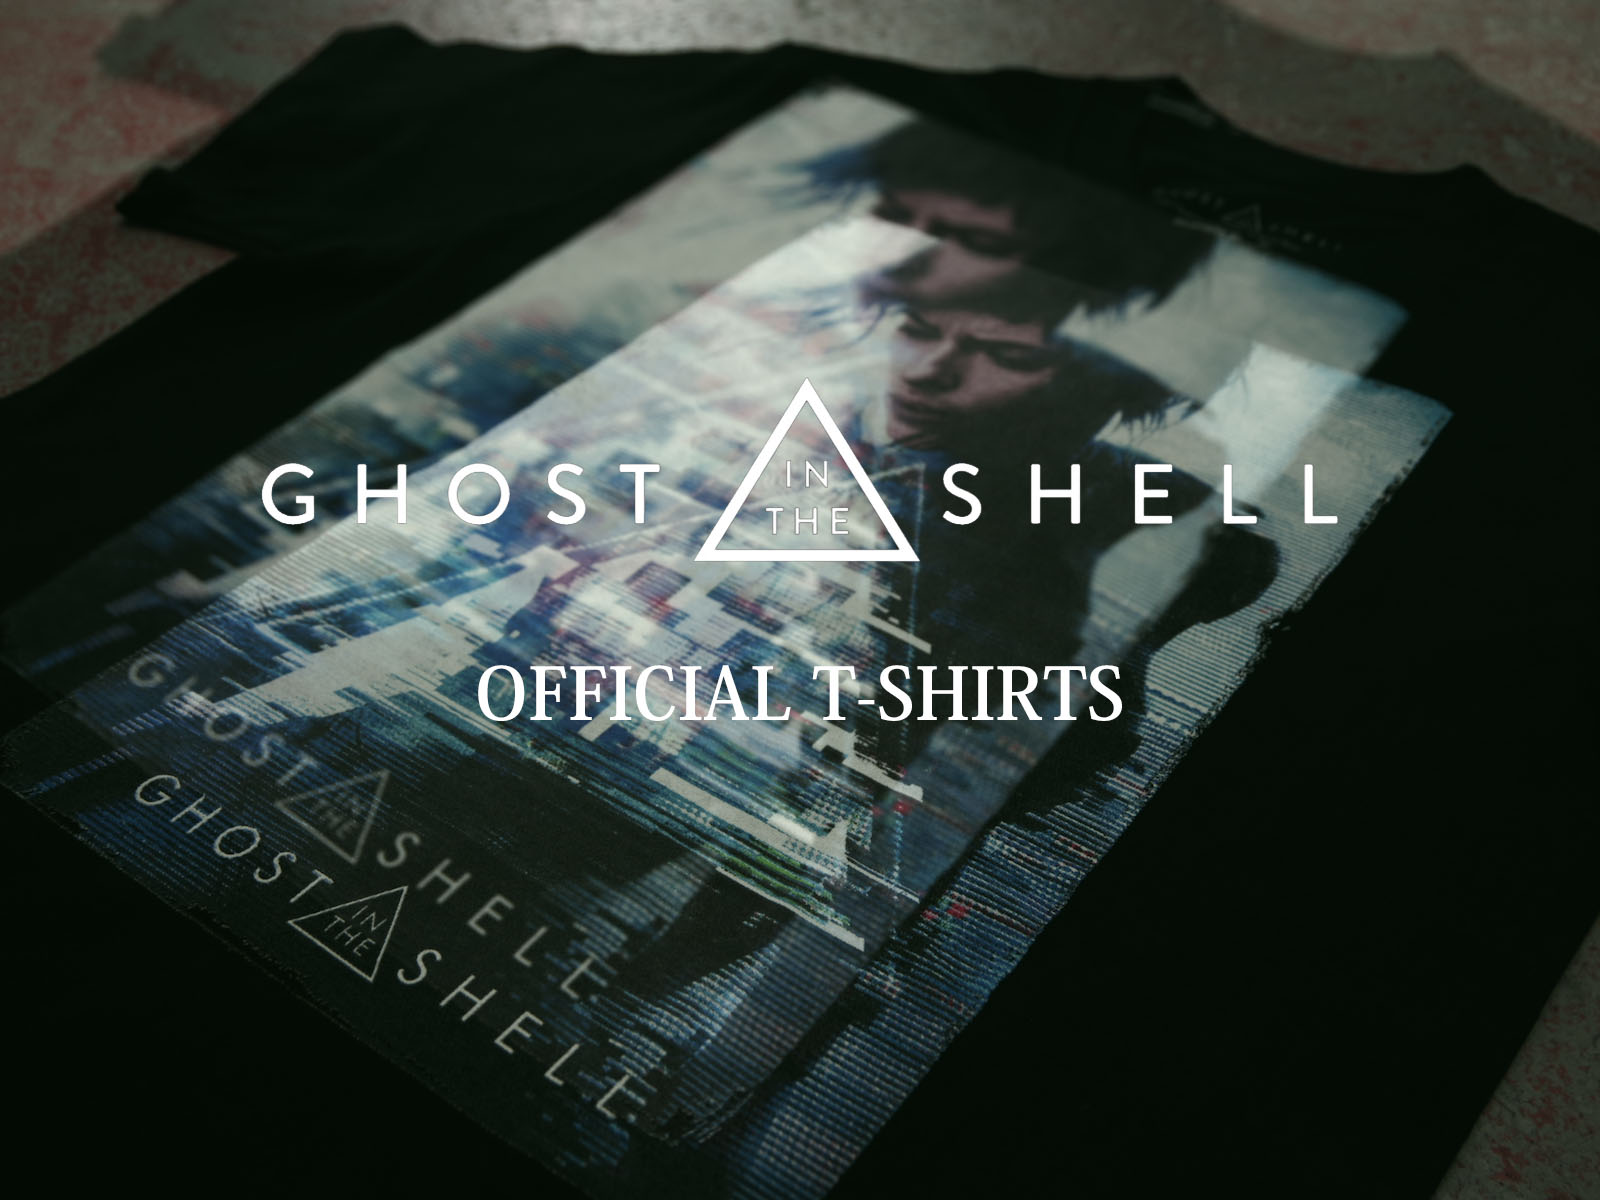 GHOST IN THE SHELL / ゴースト・イン・ザ・シェル OFFICIAL T-SHIRTS